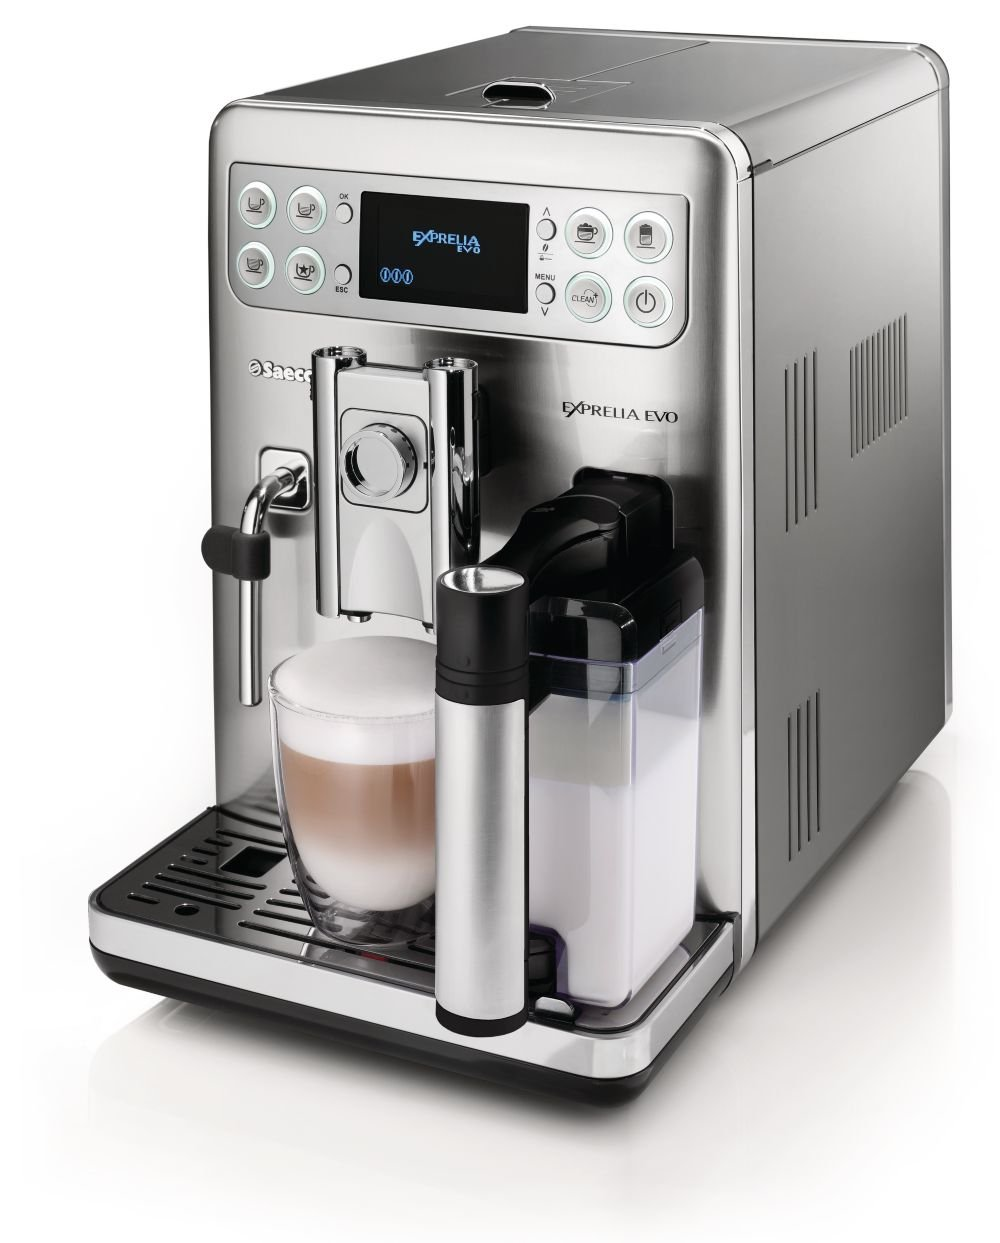 Saeco HD8857/47 Philips Exprellia EVO Fully Automatic Espresso Machine